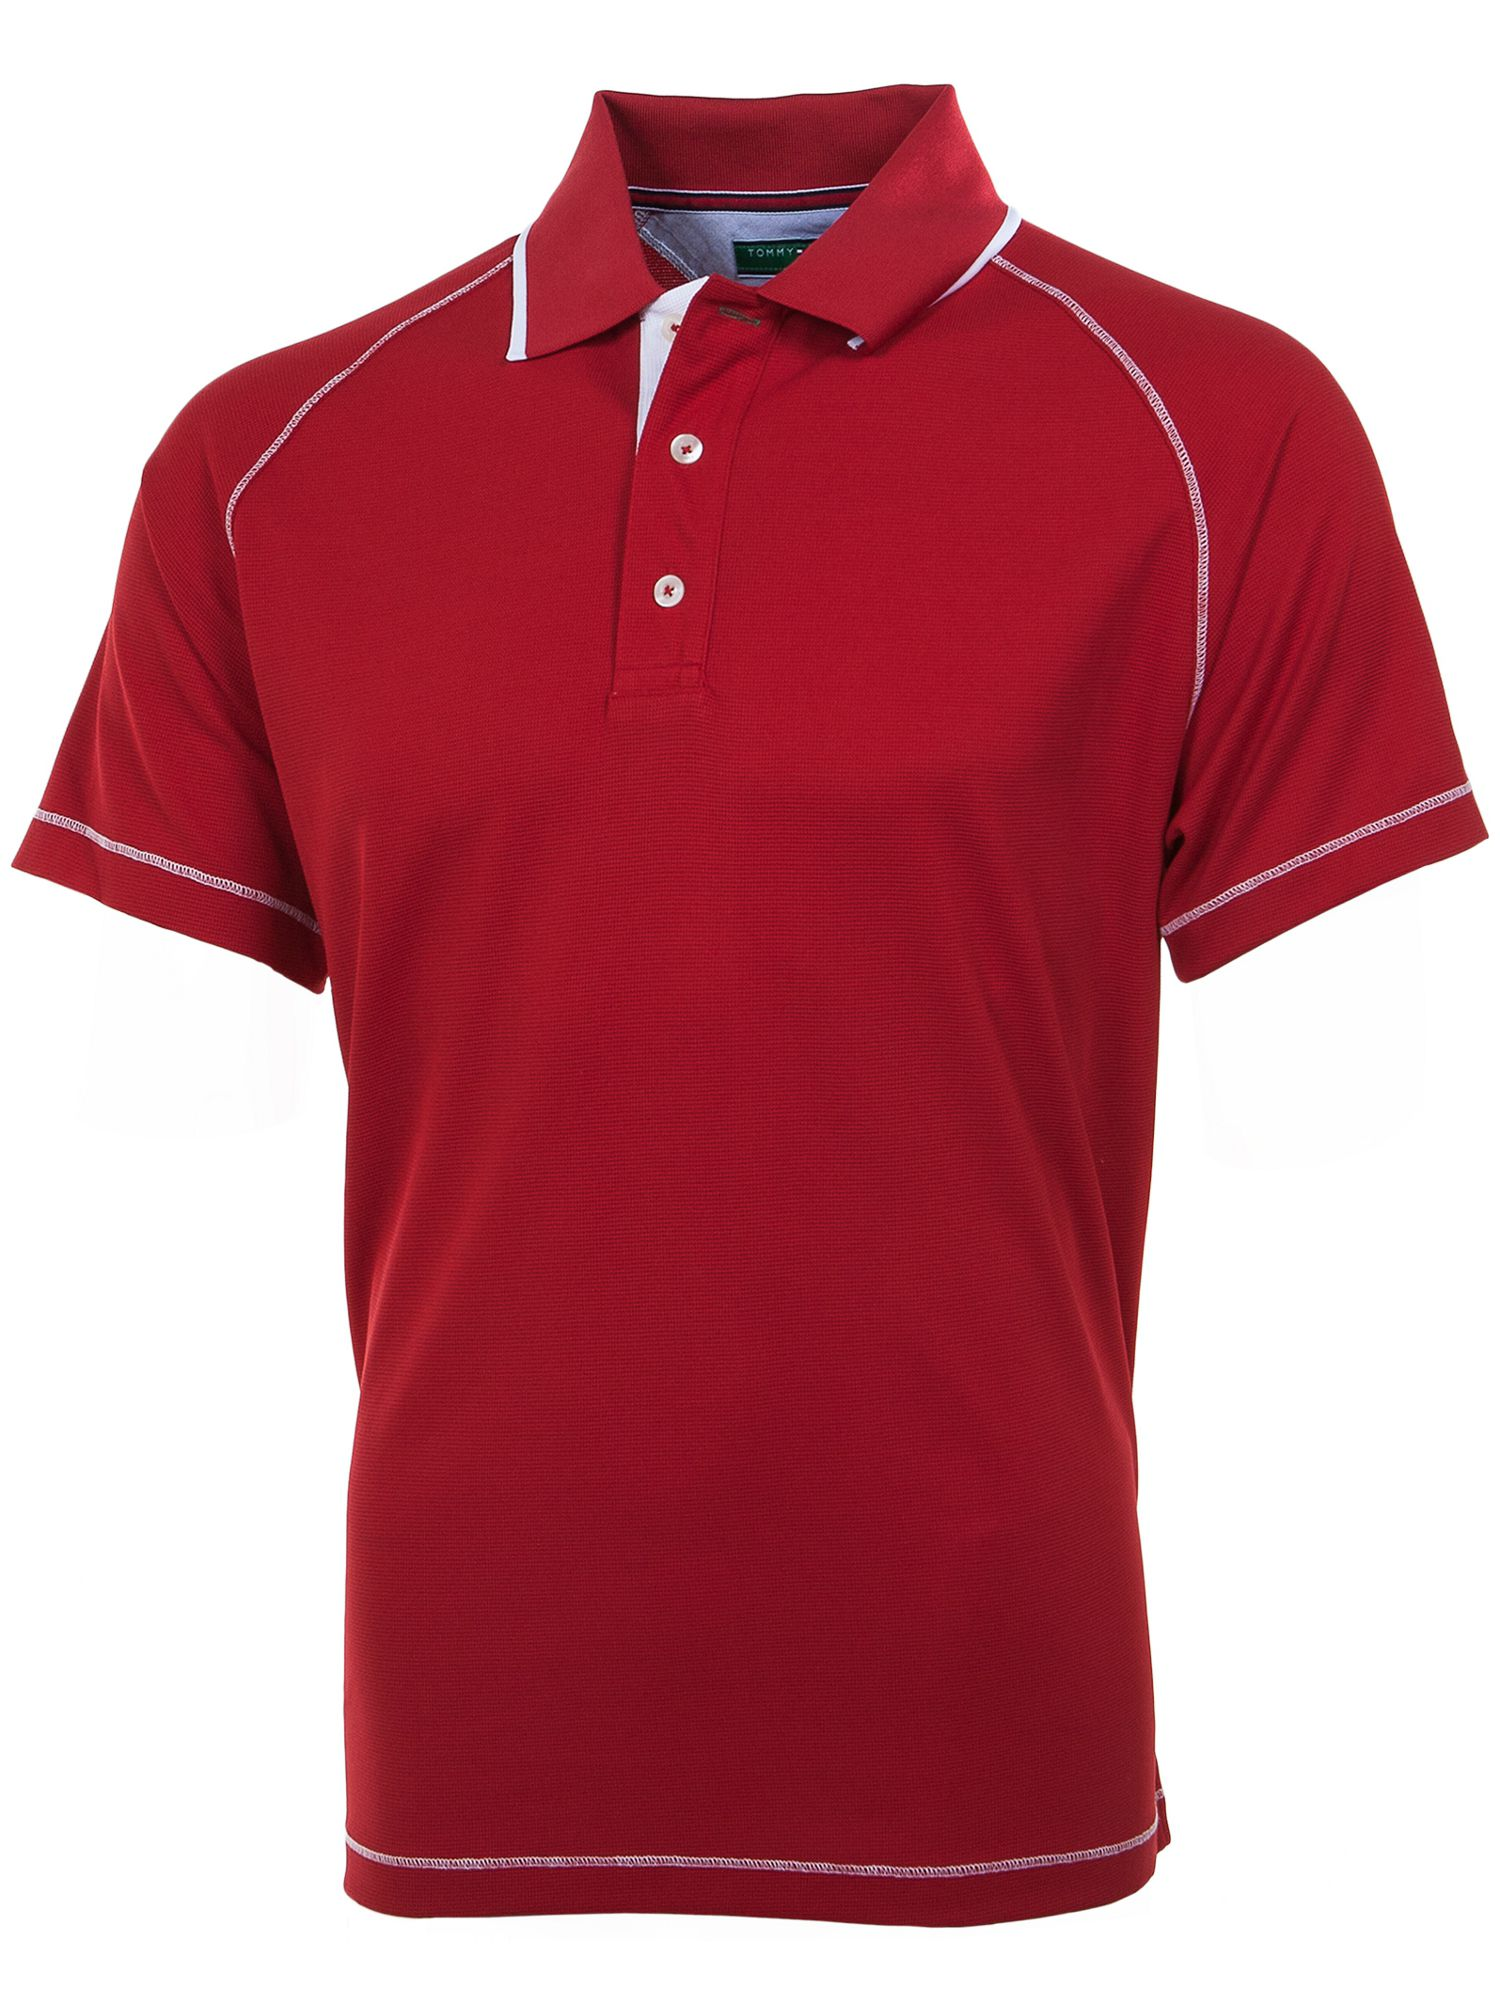 Marshall raglan polo shirt